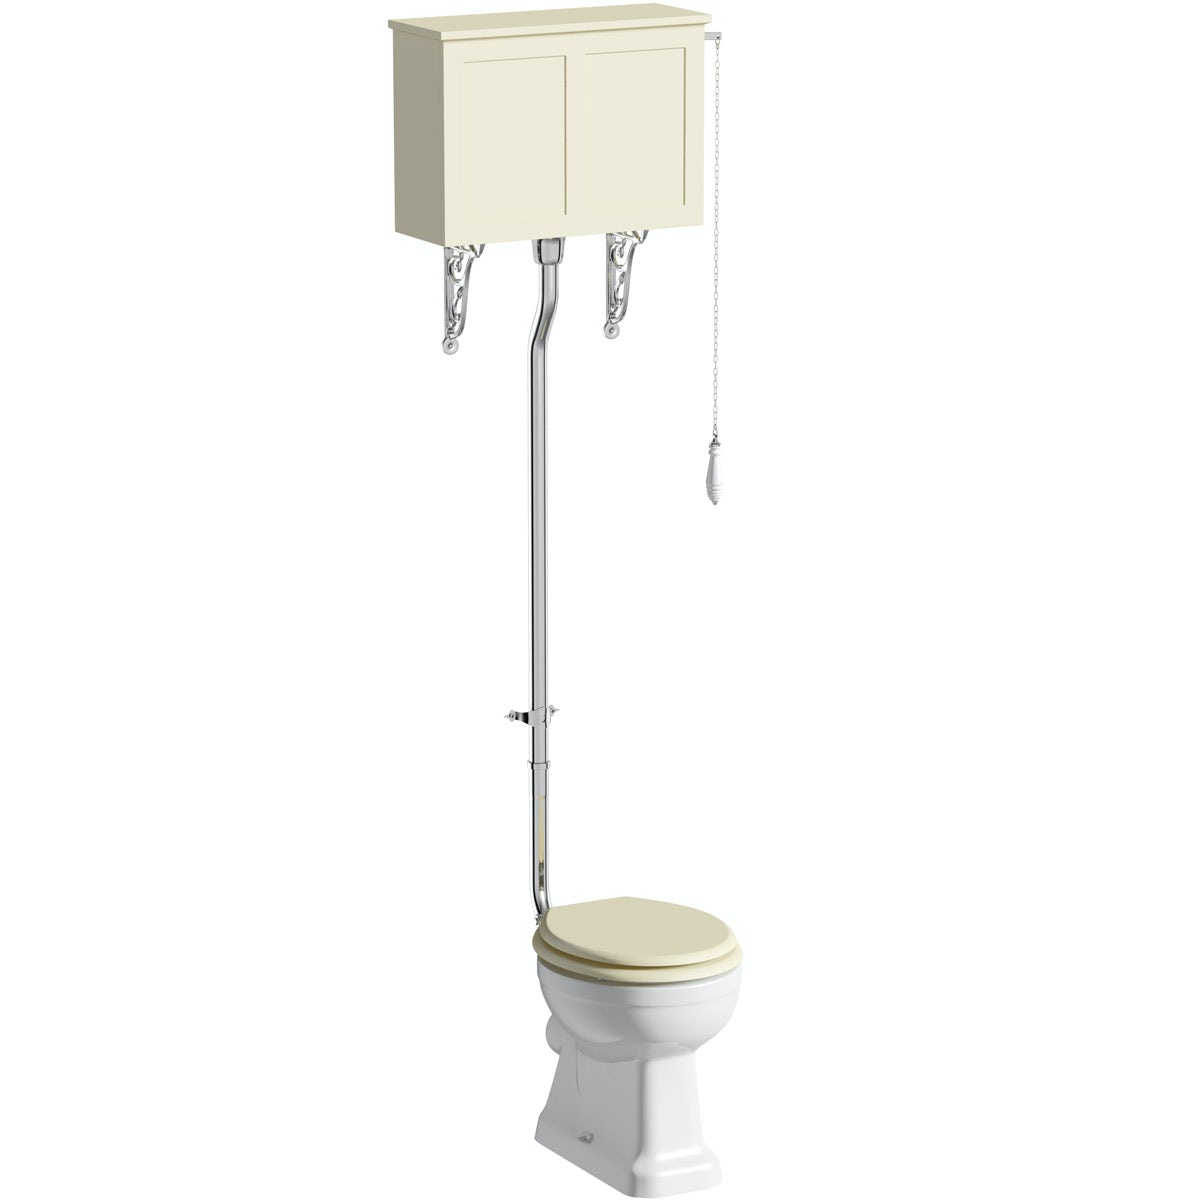 The Bath Co Camberley High Level Toilet With Ivory Toilet